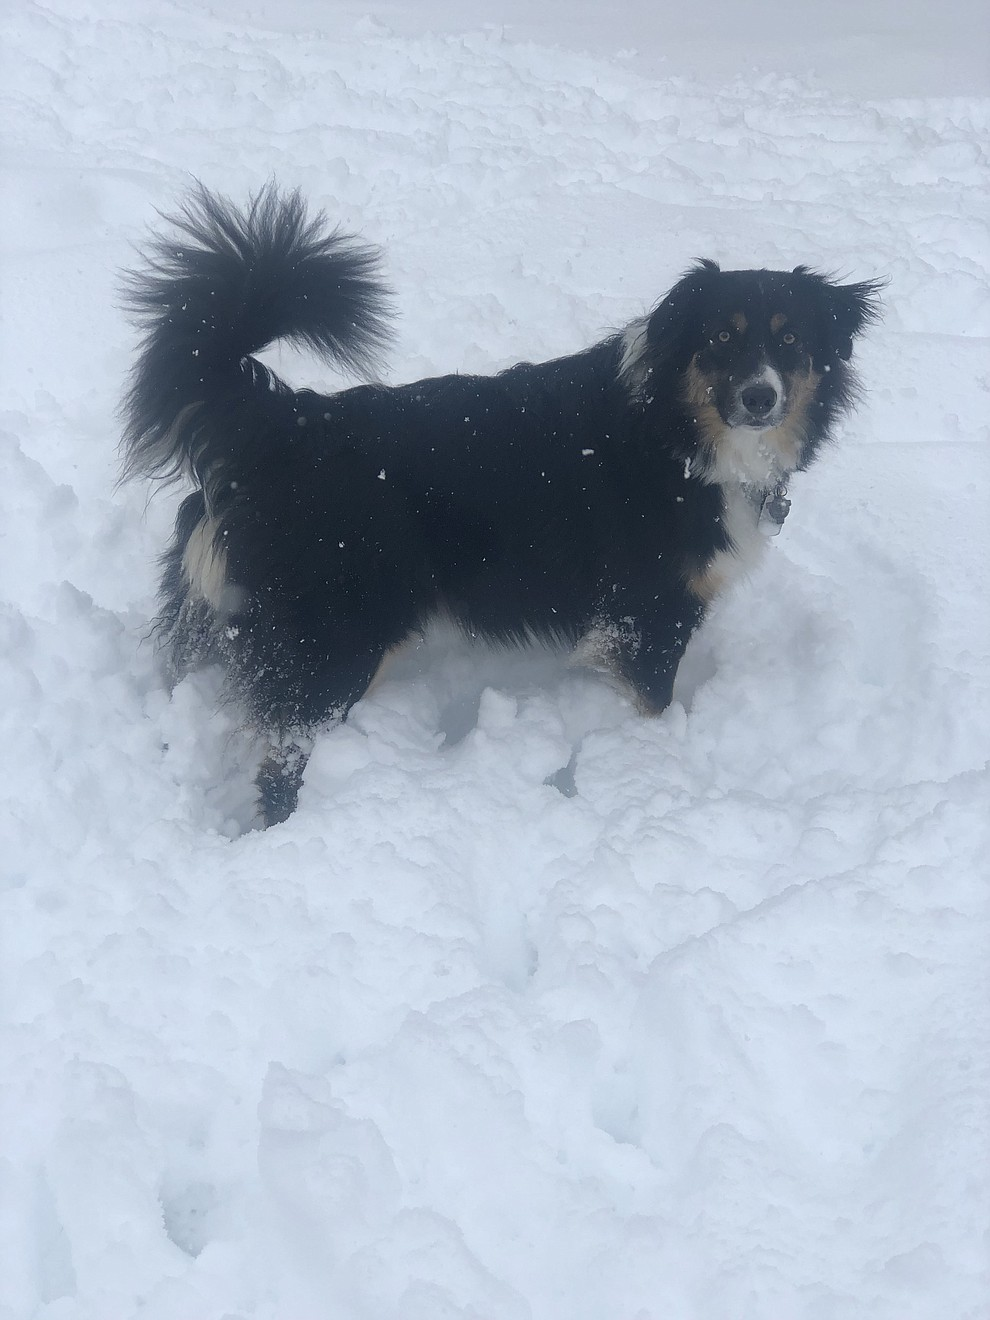 Buddy the border collie Aussie mix in Chino Valley snow. (Kristen Purol)